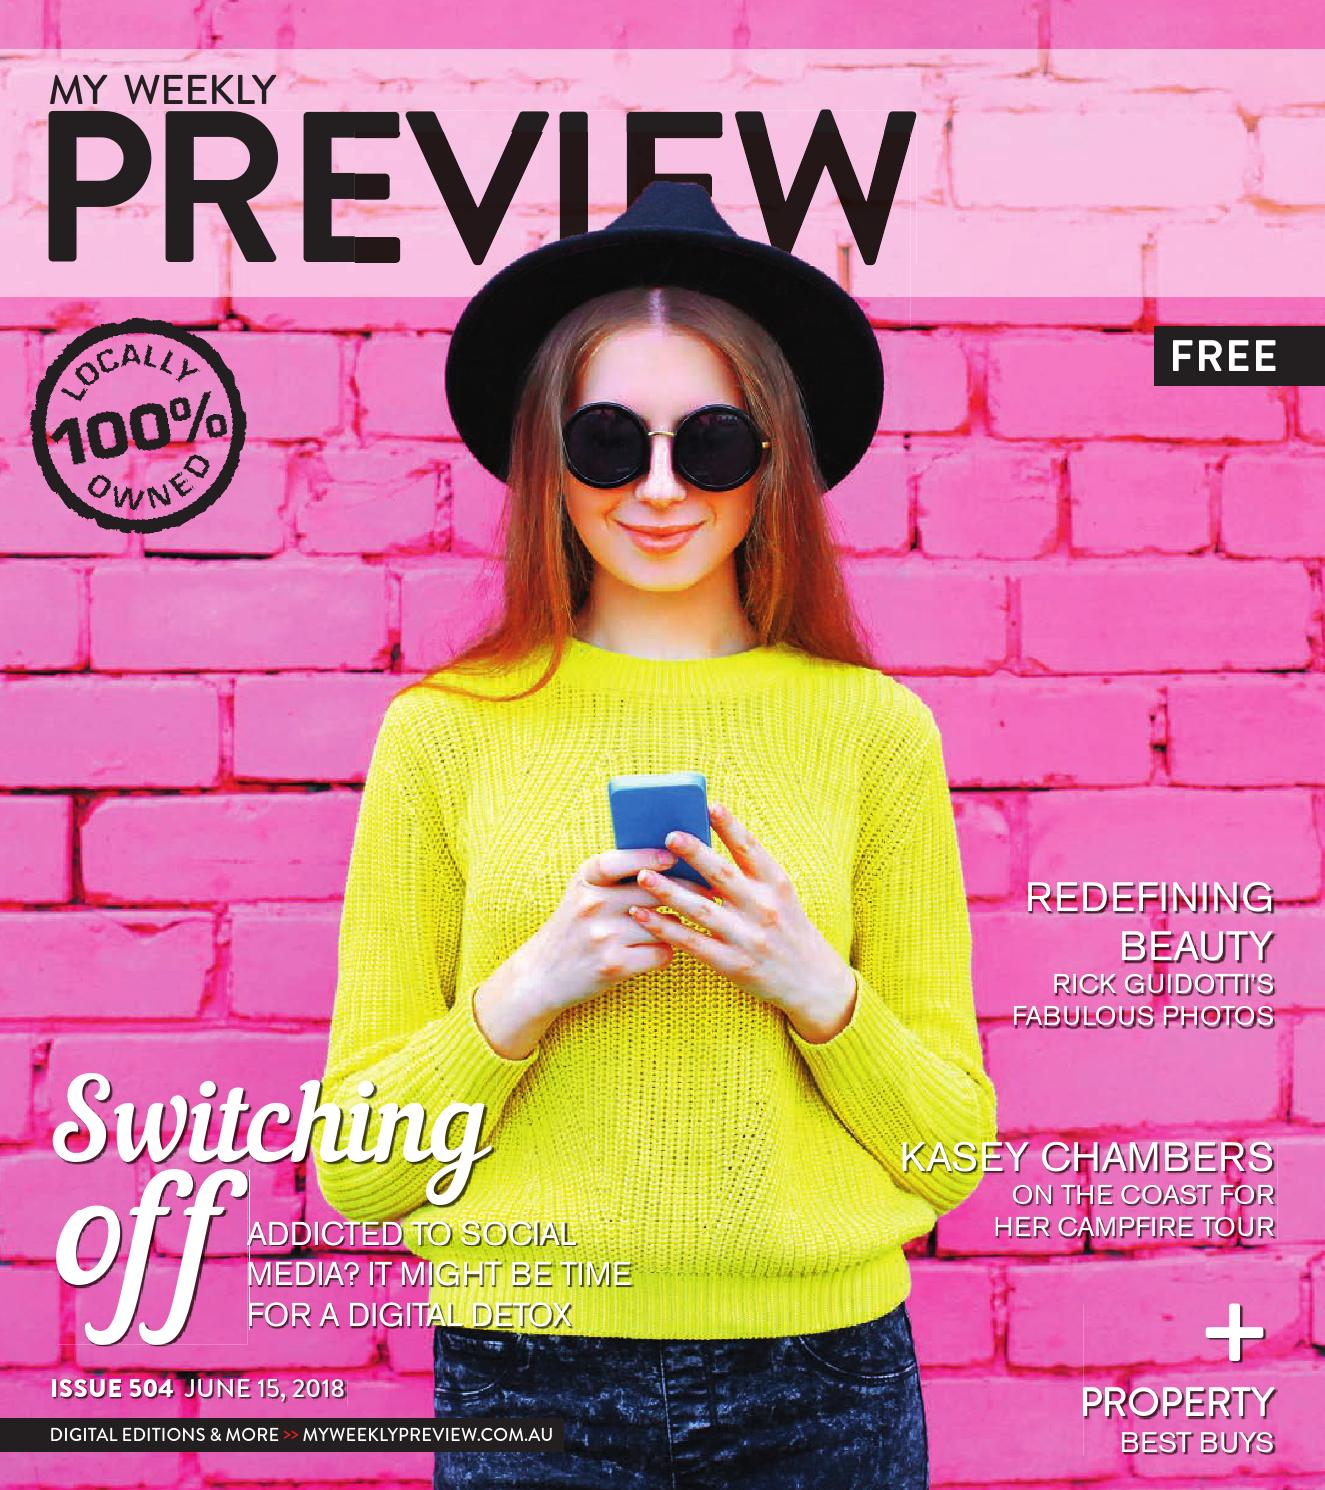 My Weekly Preview Issue 504 by My Weekly Preview issuu